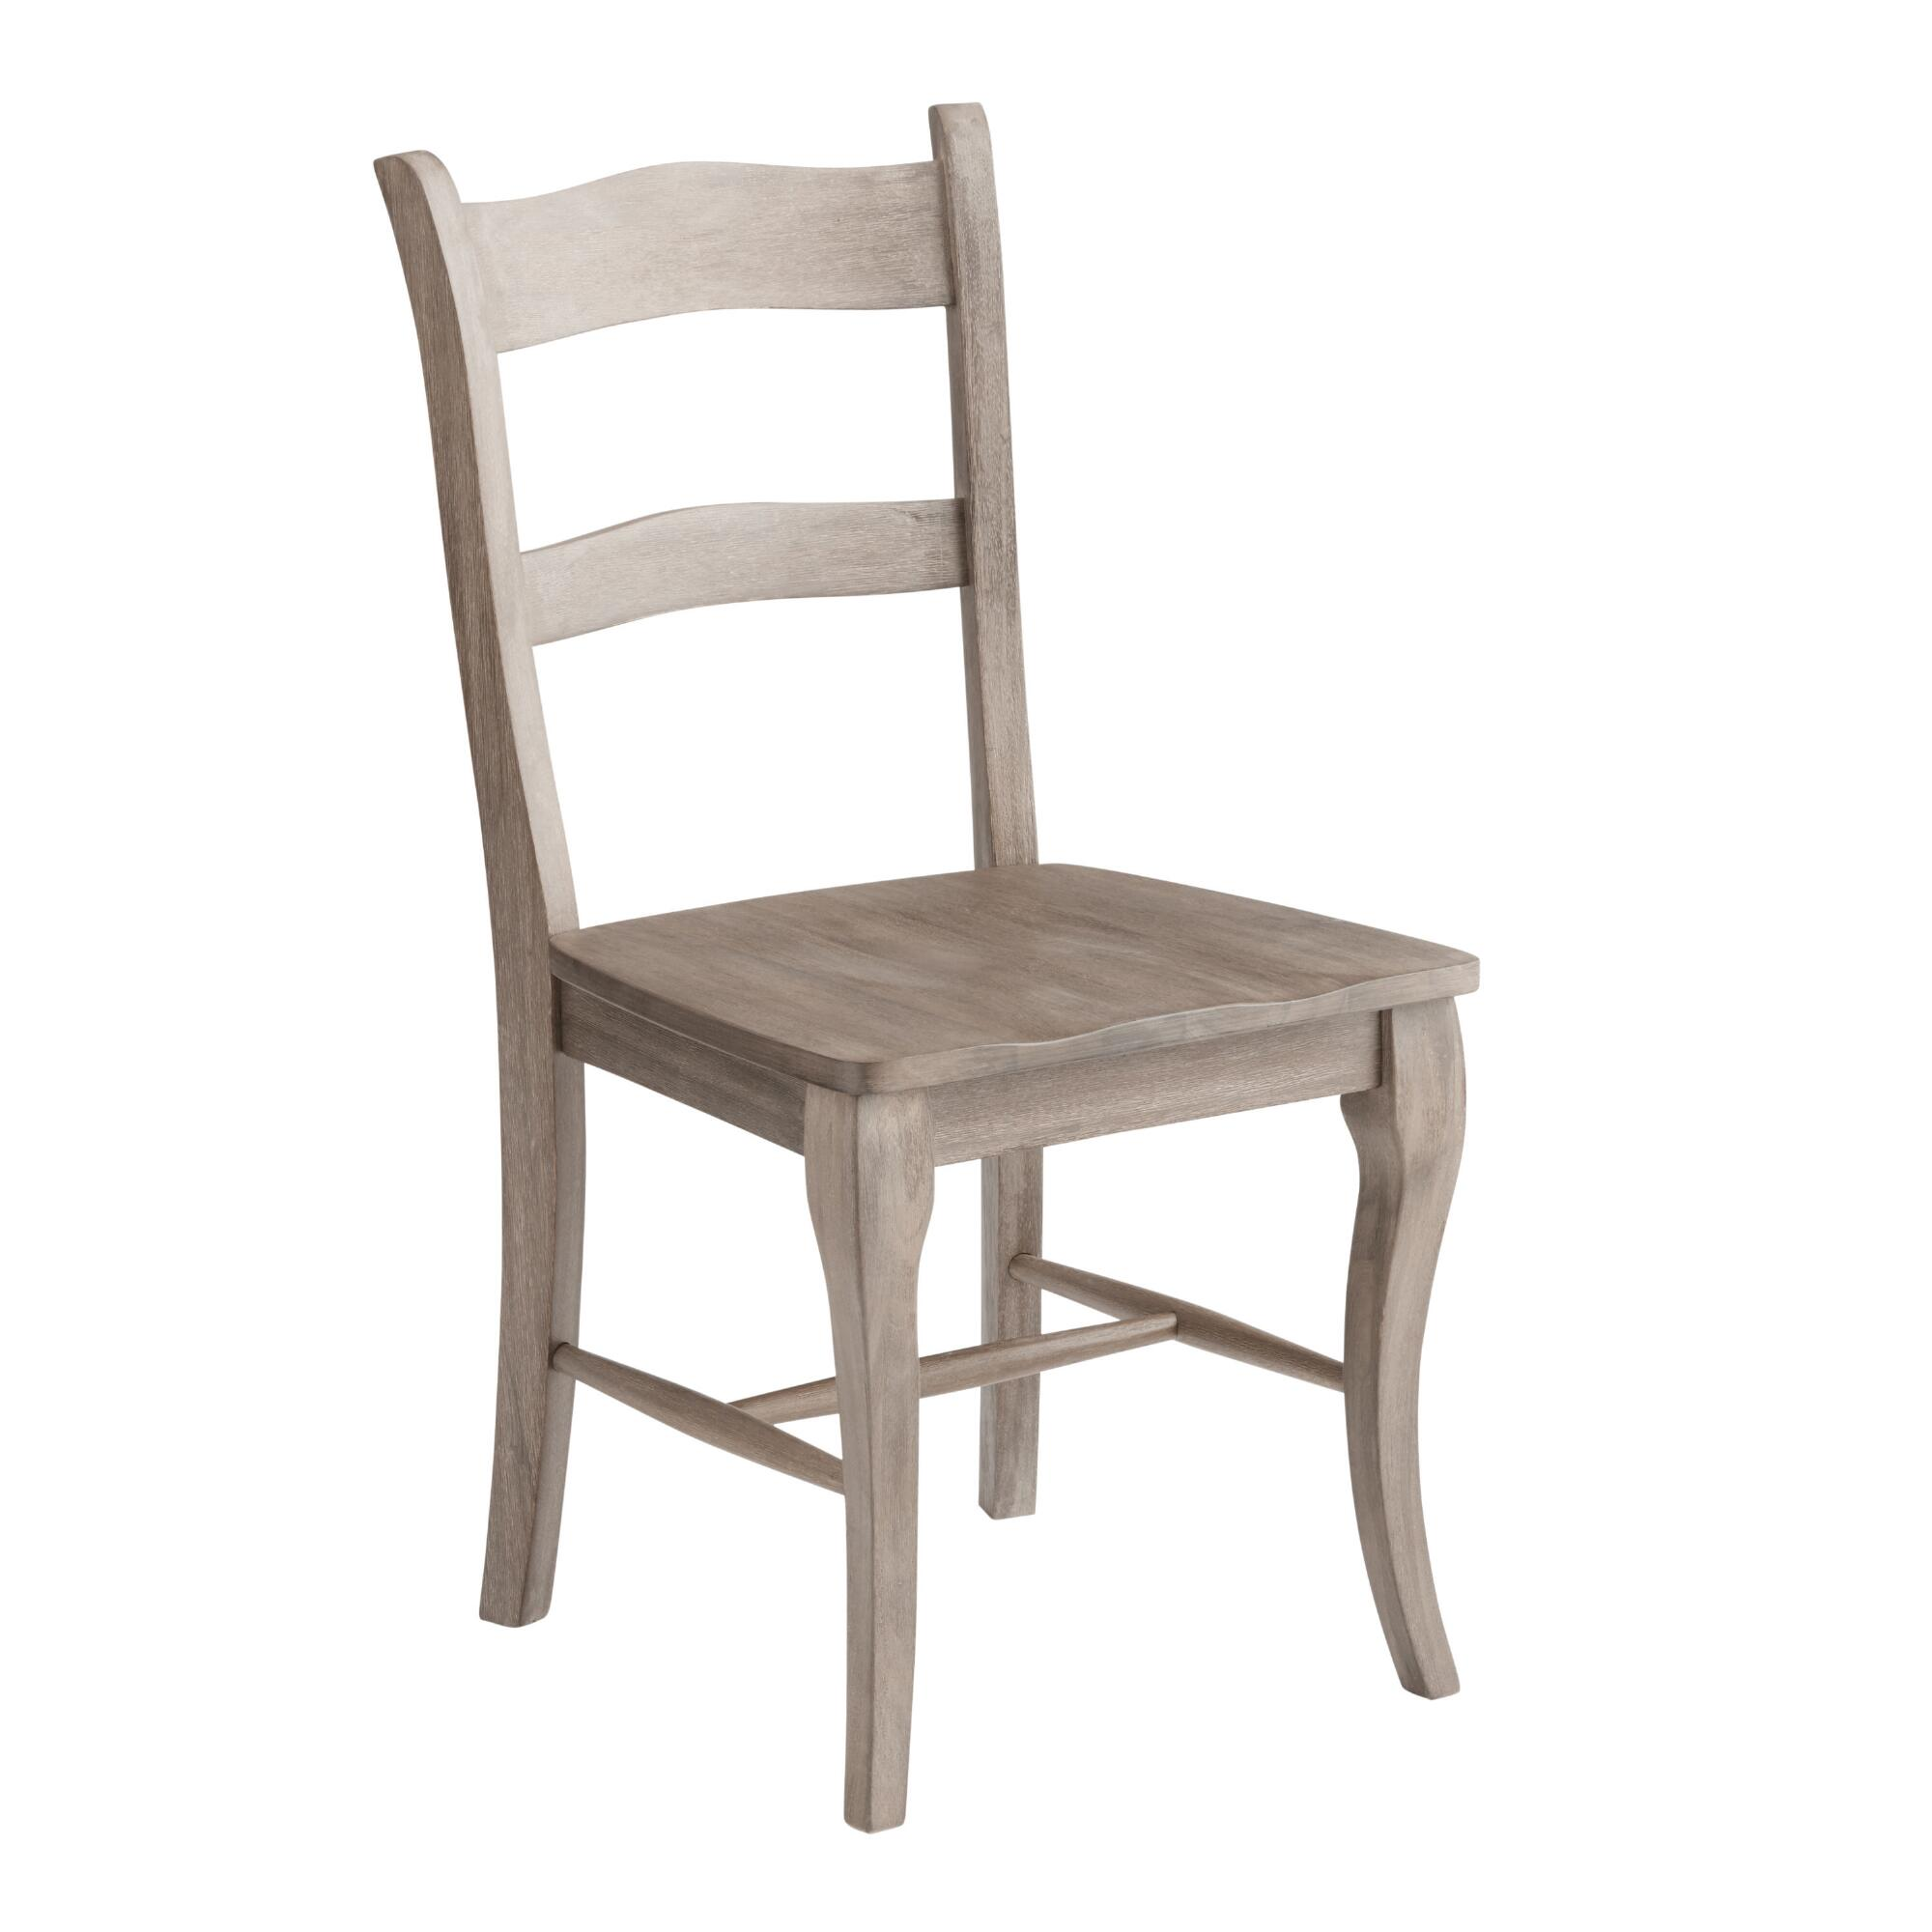 Weathered Gray Wood Jozy Dining Chairs Set Of 2 World Market